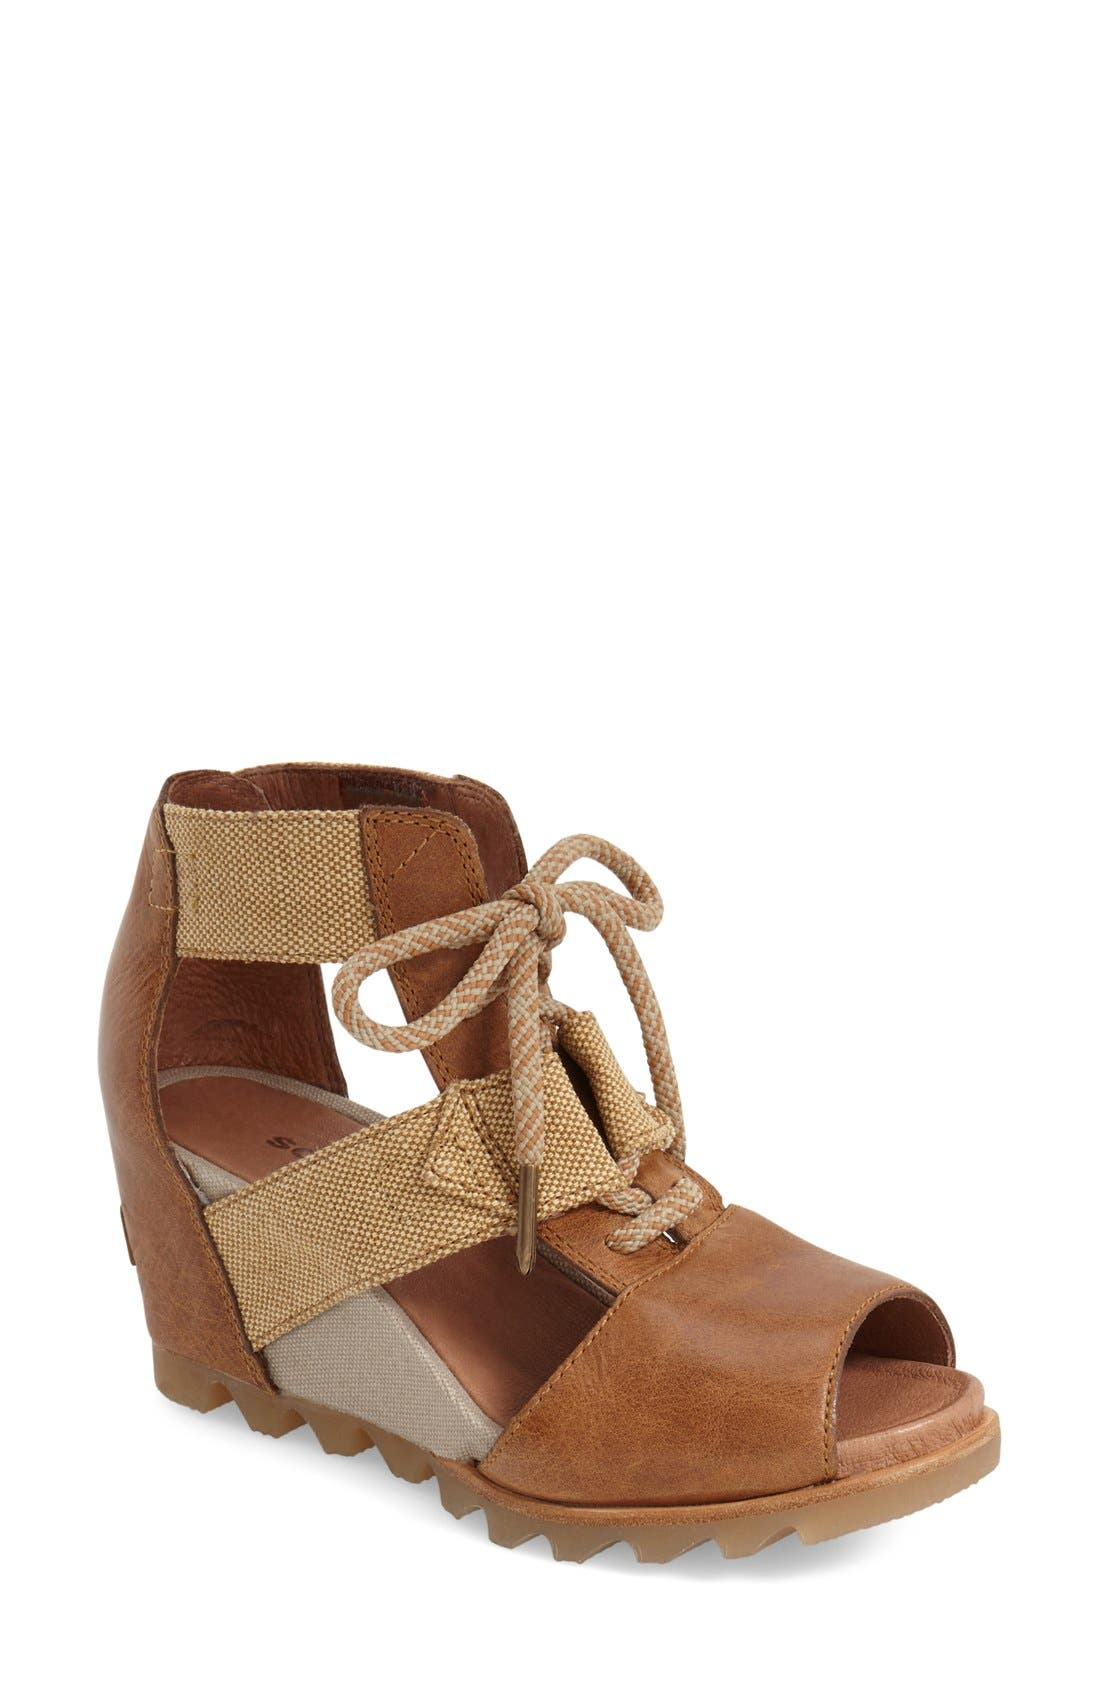 'Joanie' Cage Sandal,                             Main thumbnail 7, color,